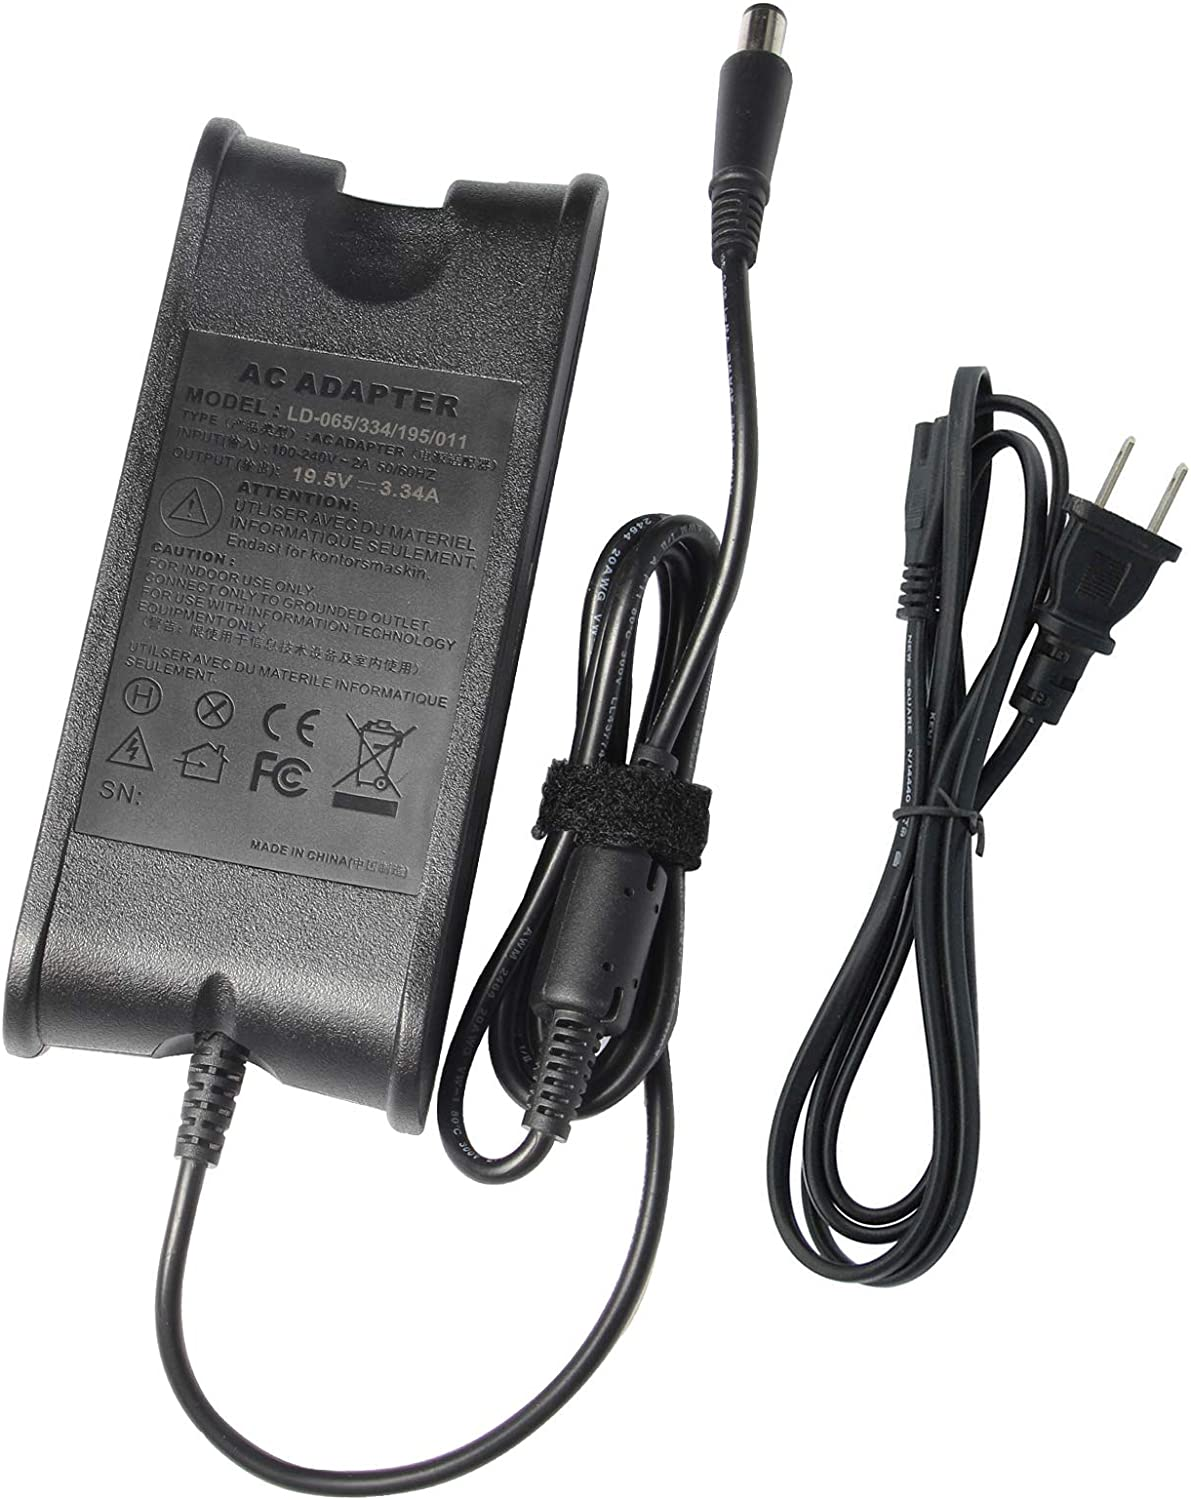 Fancy Buying 65W AC Power Adapter/Battery Charger for Dell Vostro 1000 1014 1015 1200 1220 1310 1320 1400 1500 2510 500 A840 V13 V130 N5020 P07F PP04S PP05L PP10L PP11L PP12L PP17L PP17S PP19L PP22L